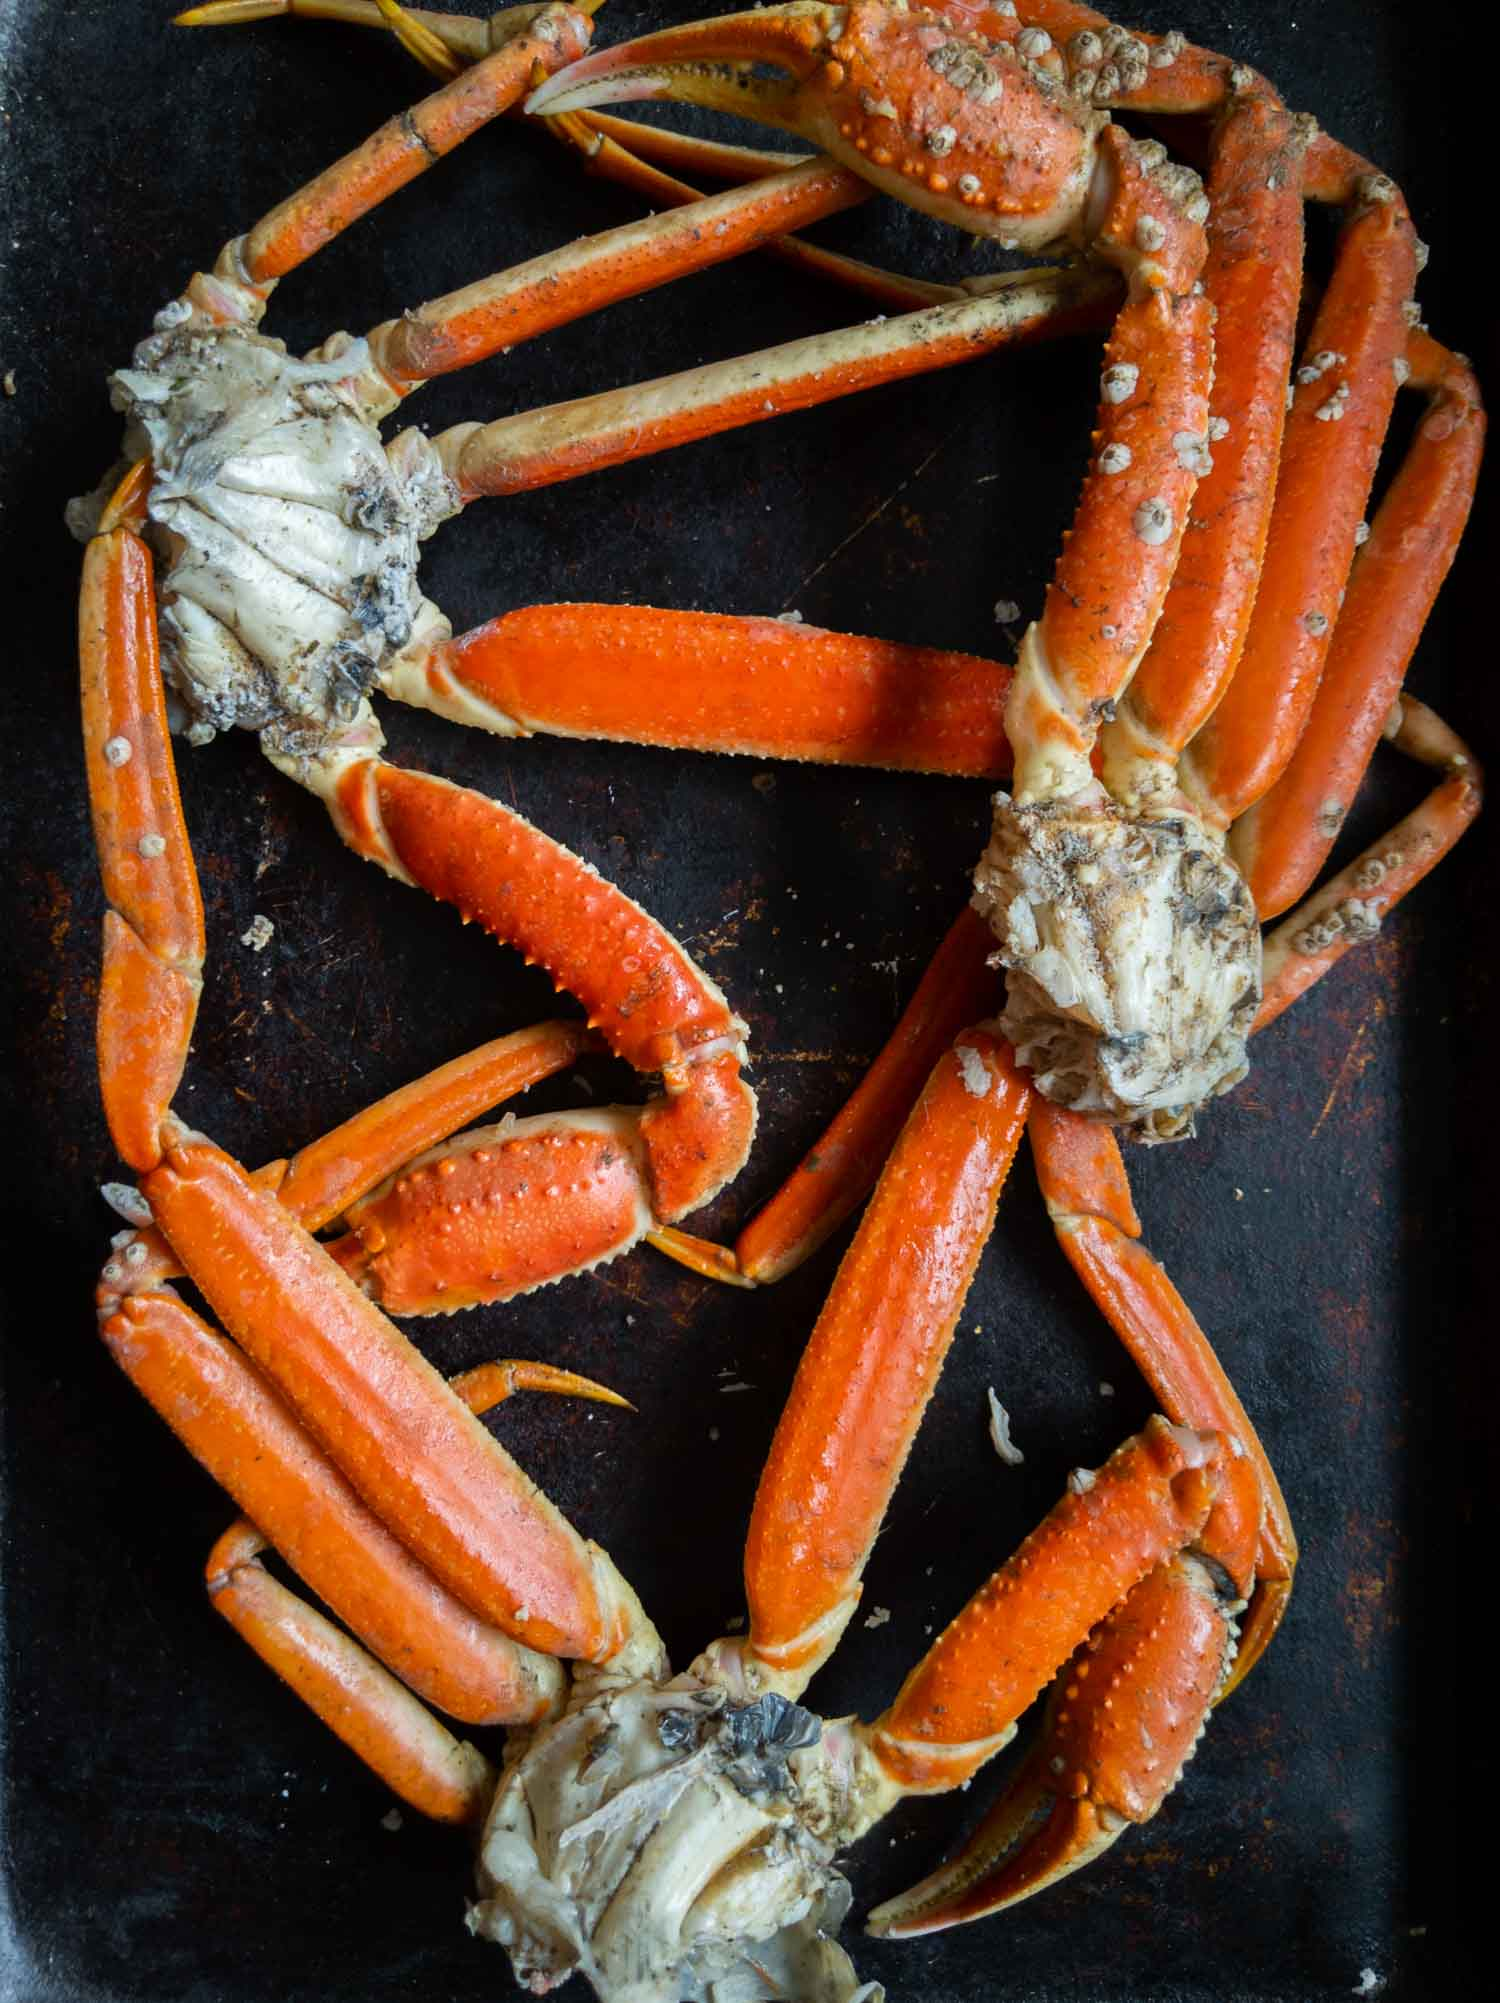 Cape Breton snow crab cooked on a cooking sheet